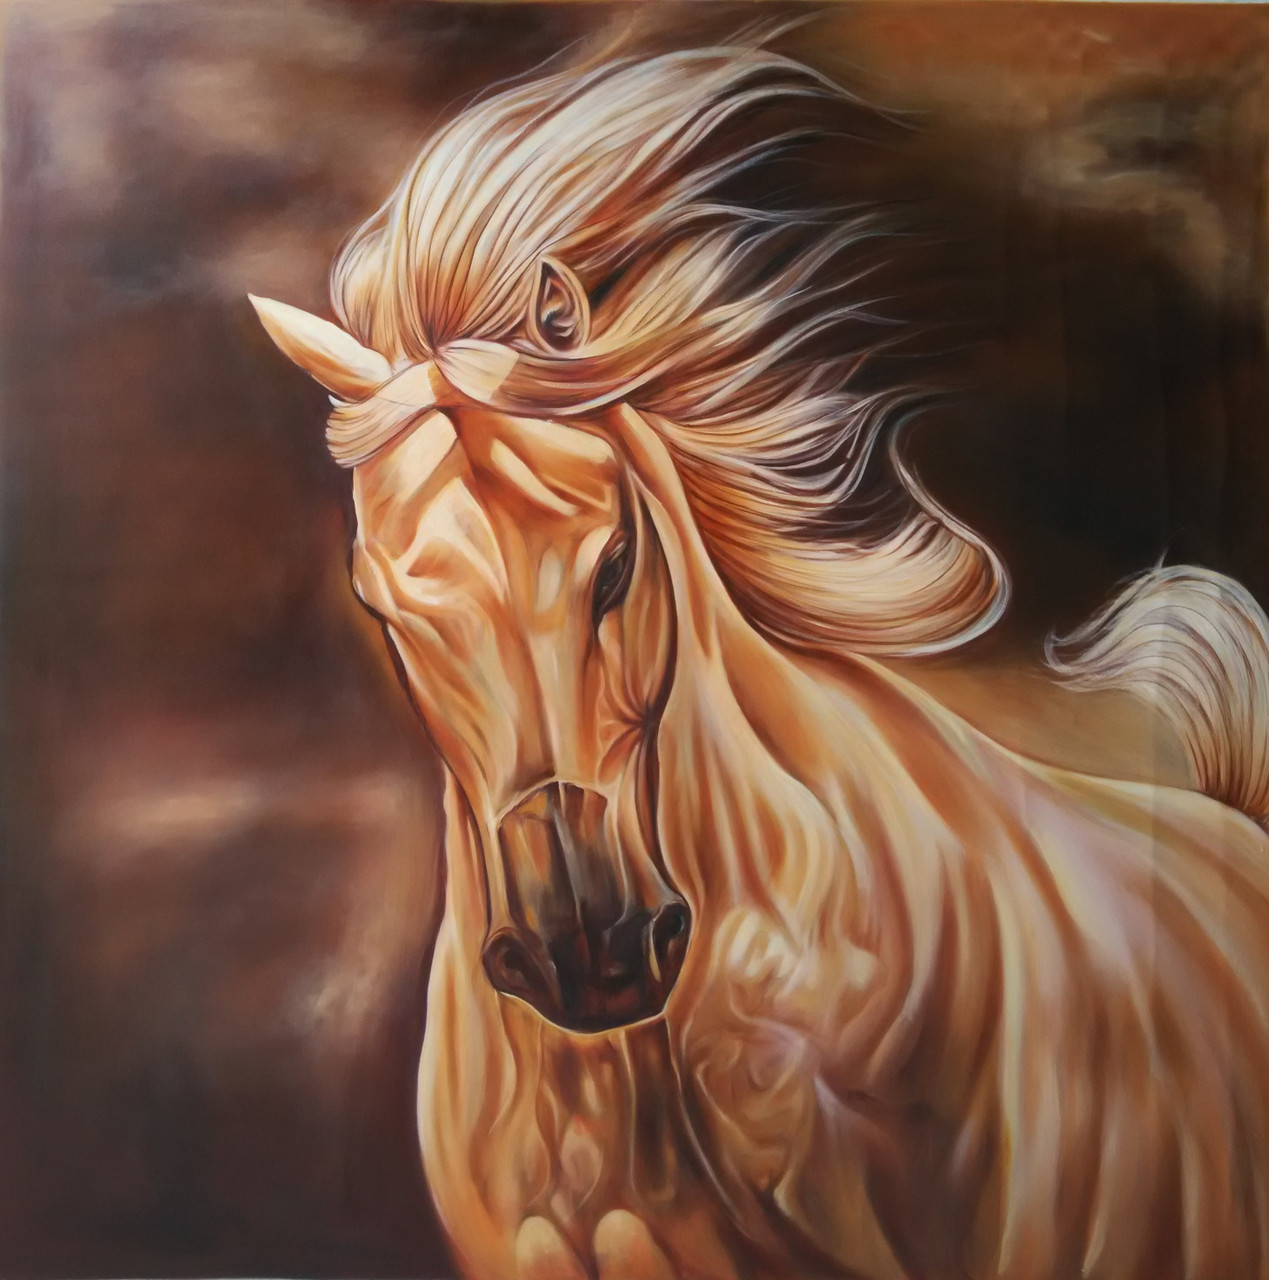 Buy Vastu Energy Horse Painting Medium Handmade Painting By Sourabh Tiwari Seller Code Art 6662 38413 Paintings For Sale Online In India